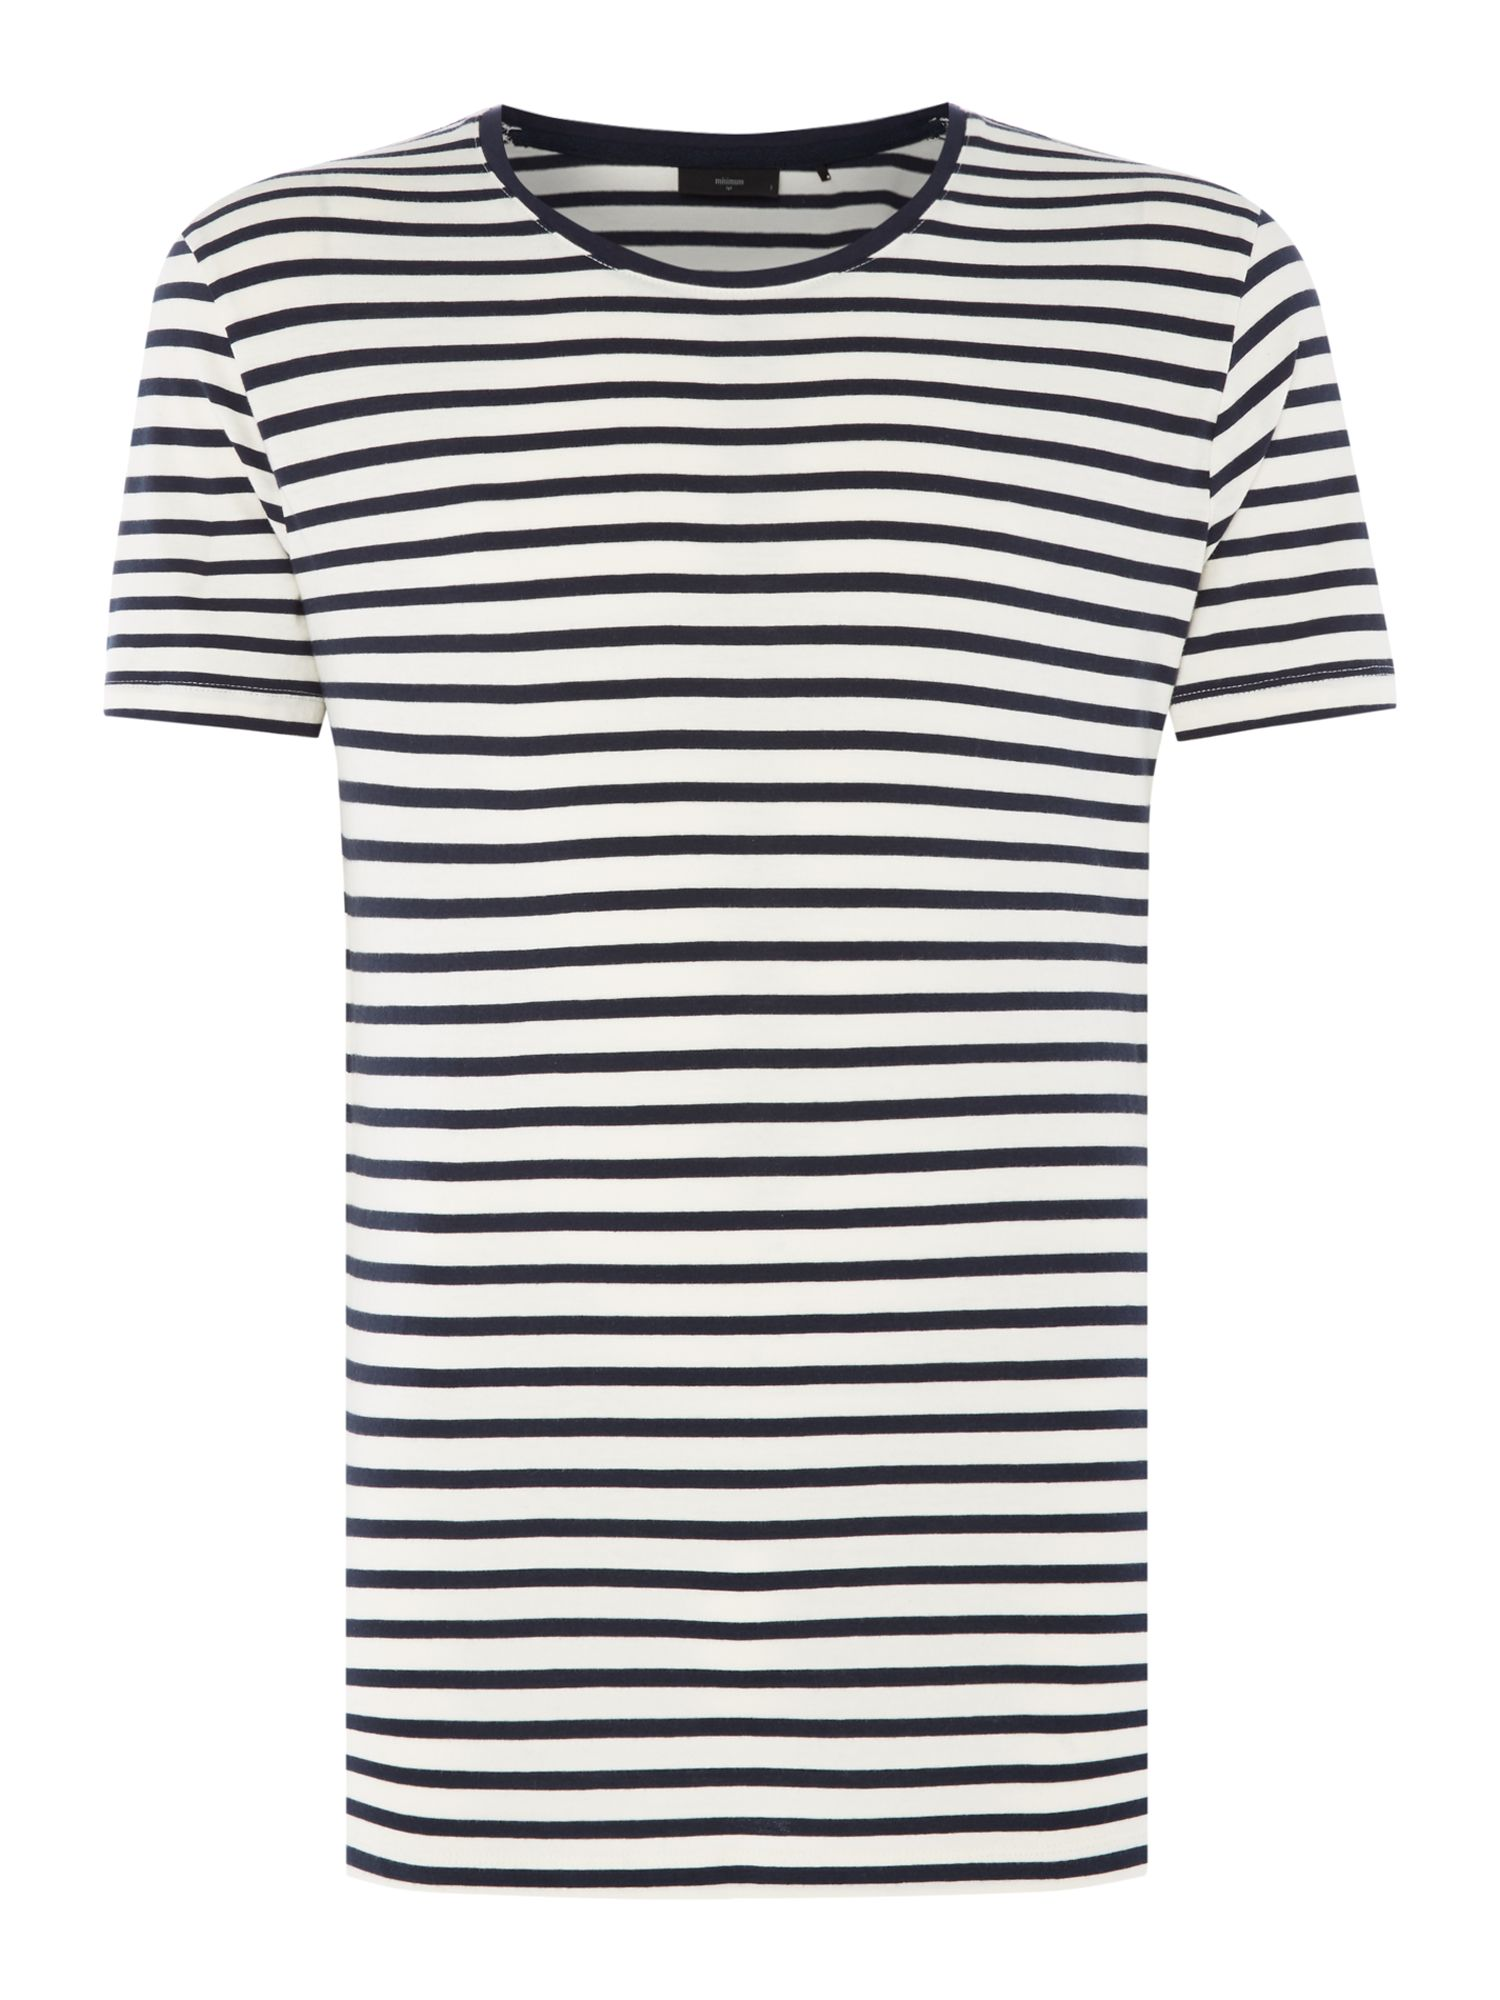 Men's Minimum Striped Crew Neck T-Shirt, Dark Blue